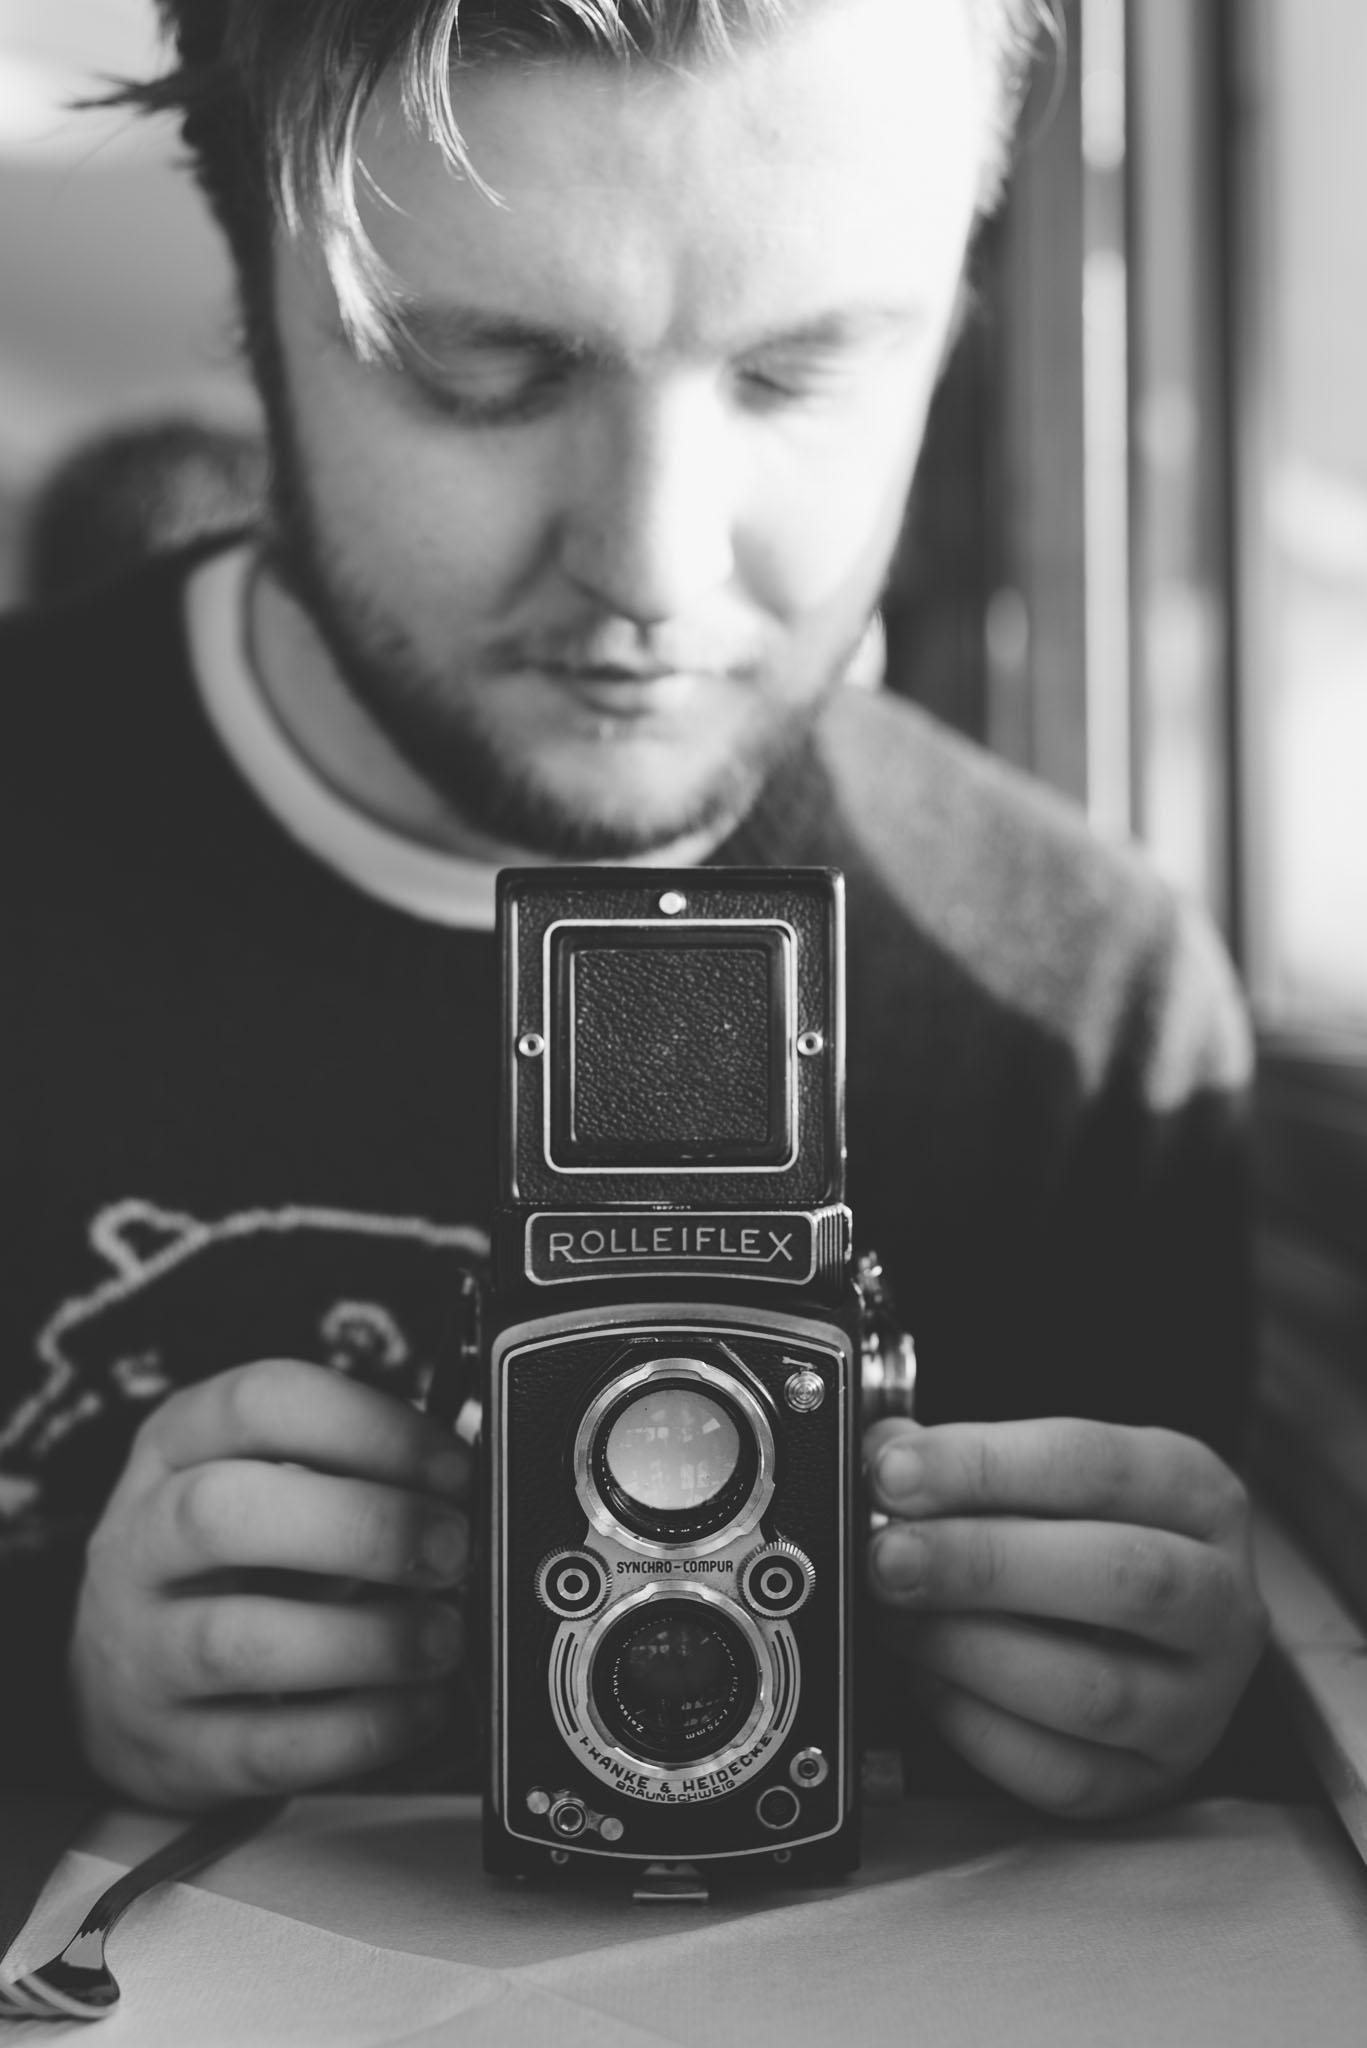 Black and white portrait photography of man holding a medium format rolleiflex camera